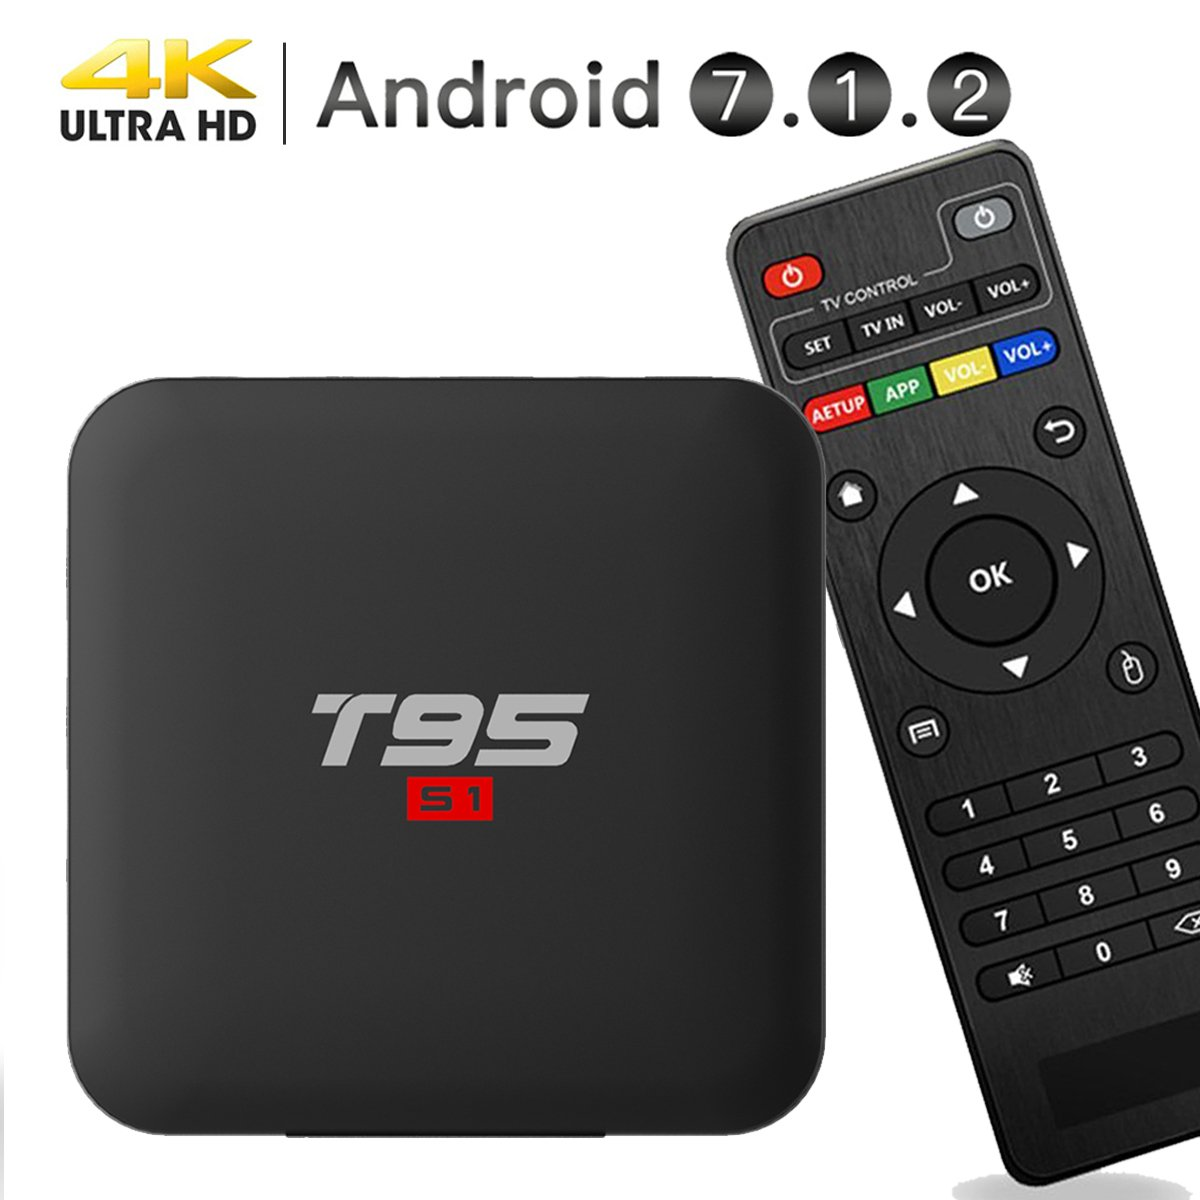 EASYTONE Android 7 1 2 TV Box,2018 Model Smart TV Box Quad-core 64 Bits  /1GB+8GB Supporting 4K (60Hz) Full HD/H 265/2 4G WiFi/HD 2 0 T95 Android Box